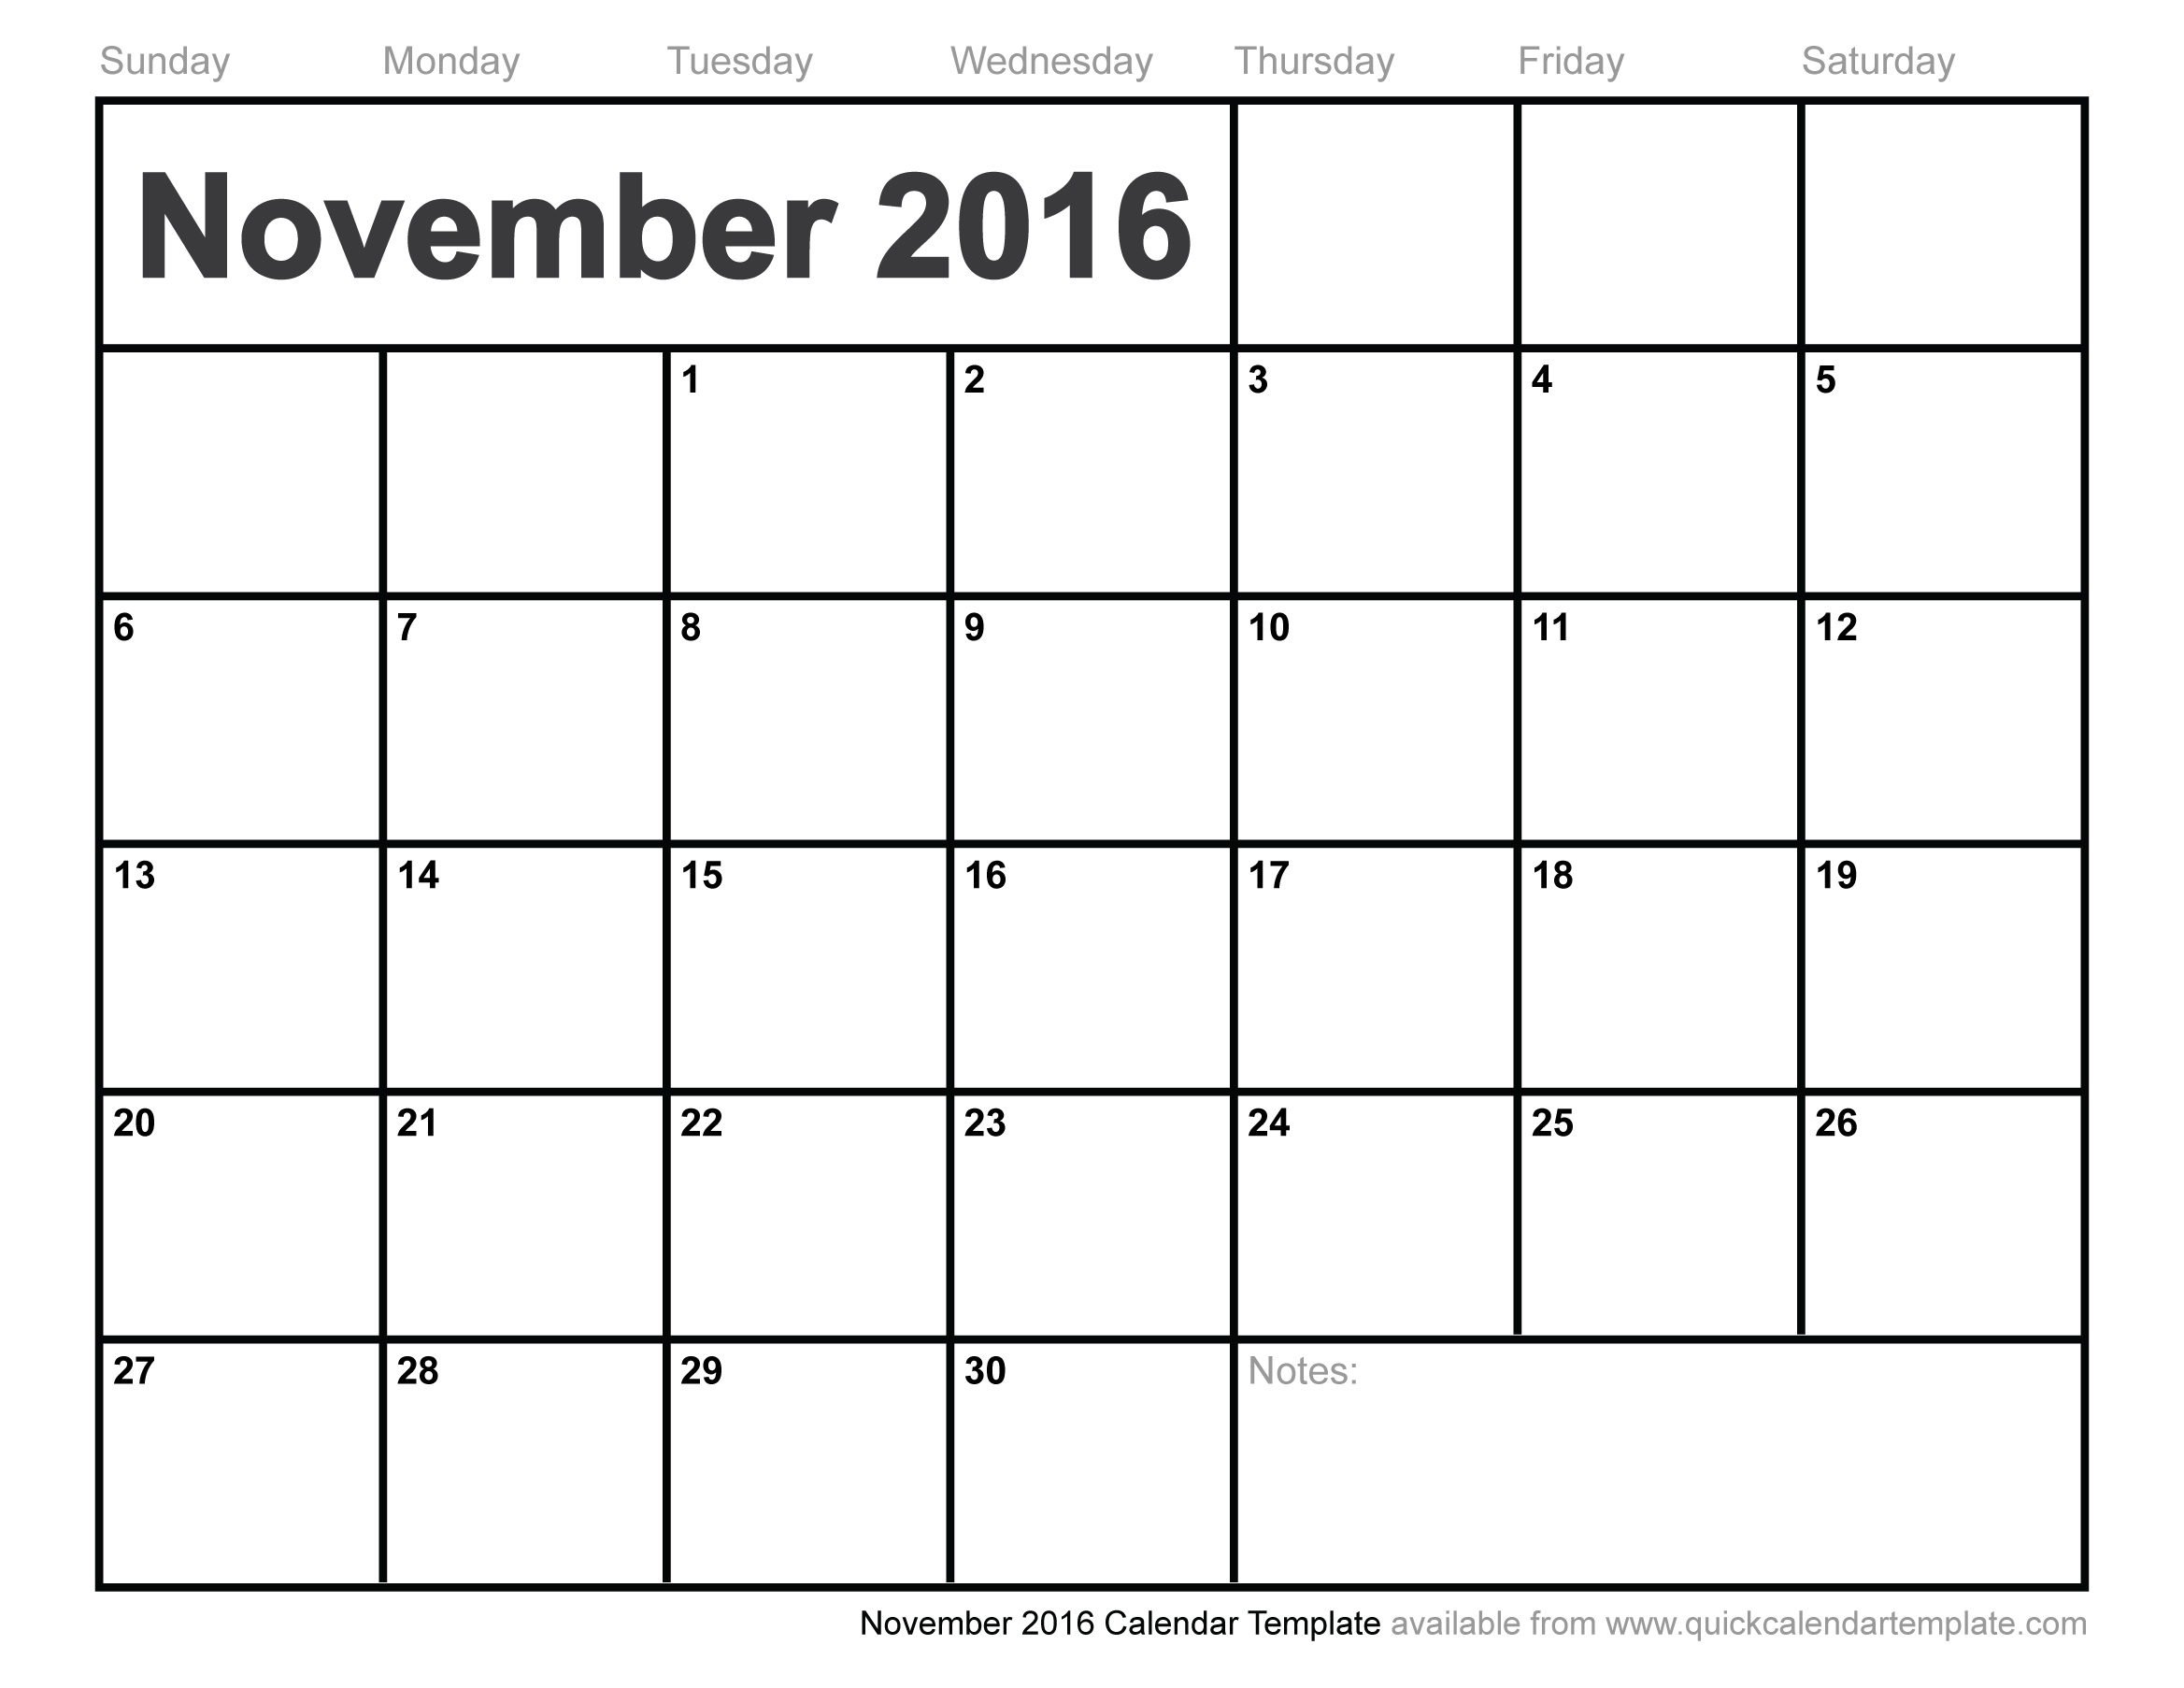 2015 november calendar clipart picture royalty free stock November calendar 2016 clipart - ClipartFest picture royalty free stock